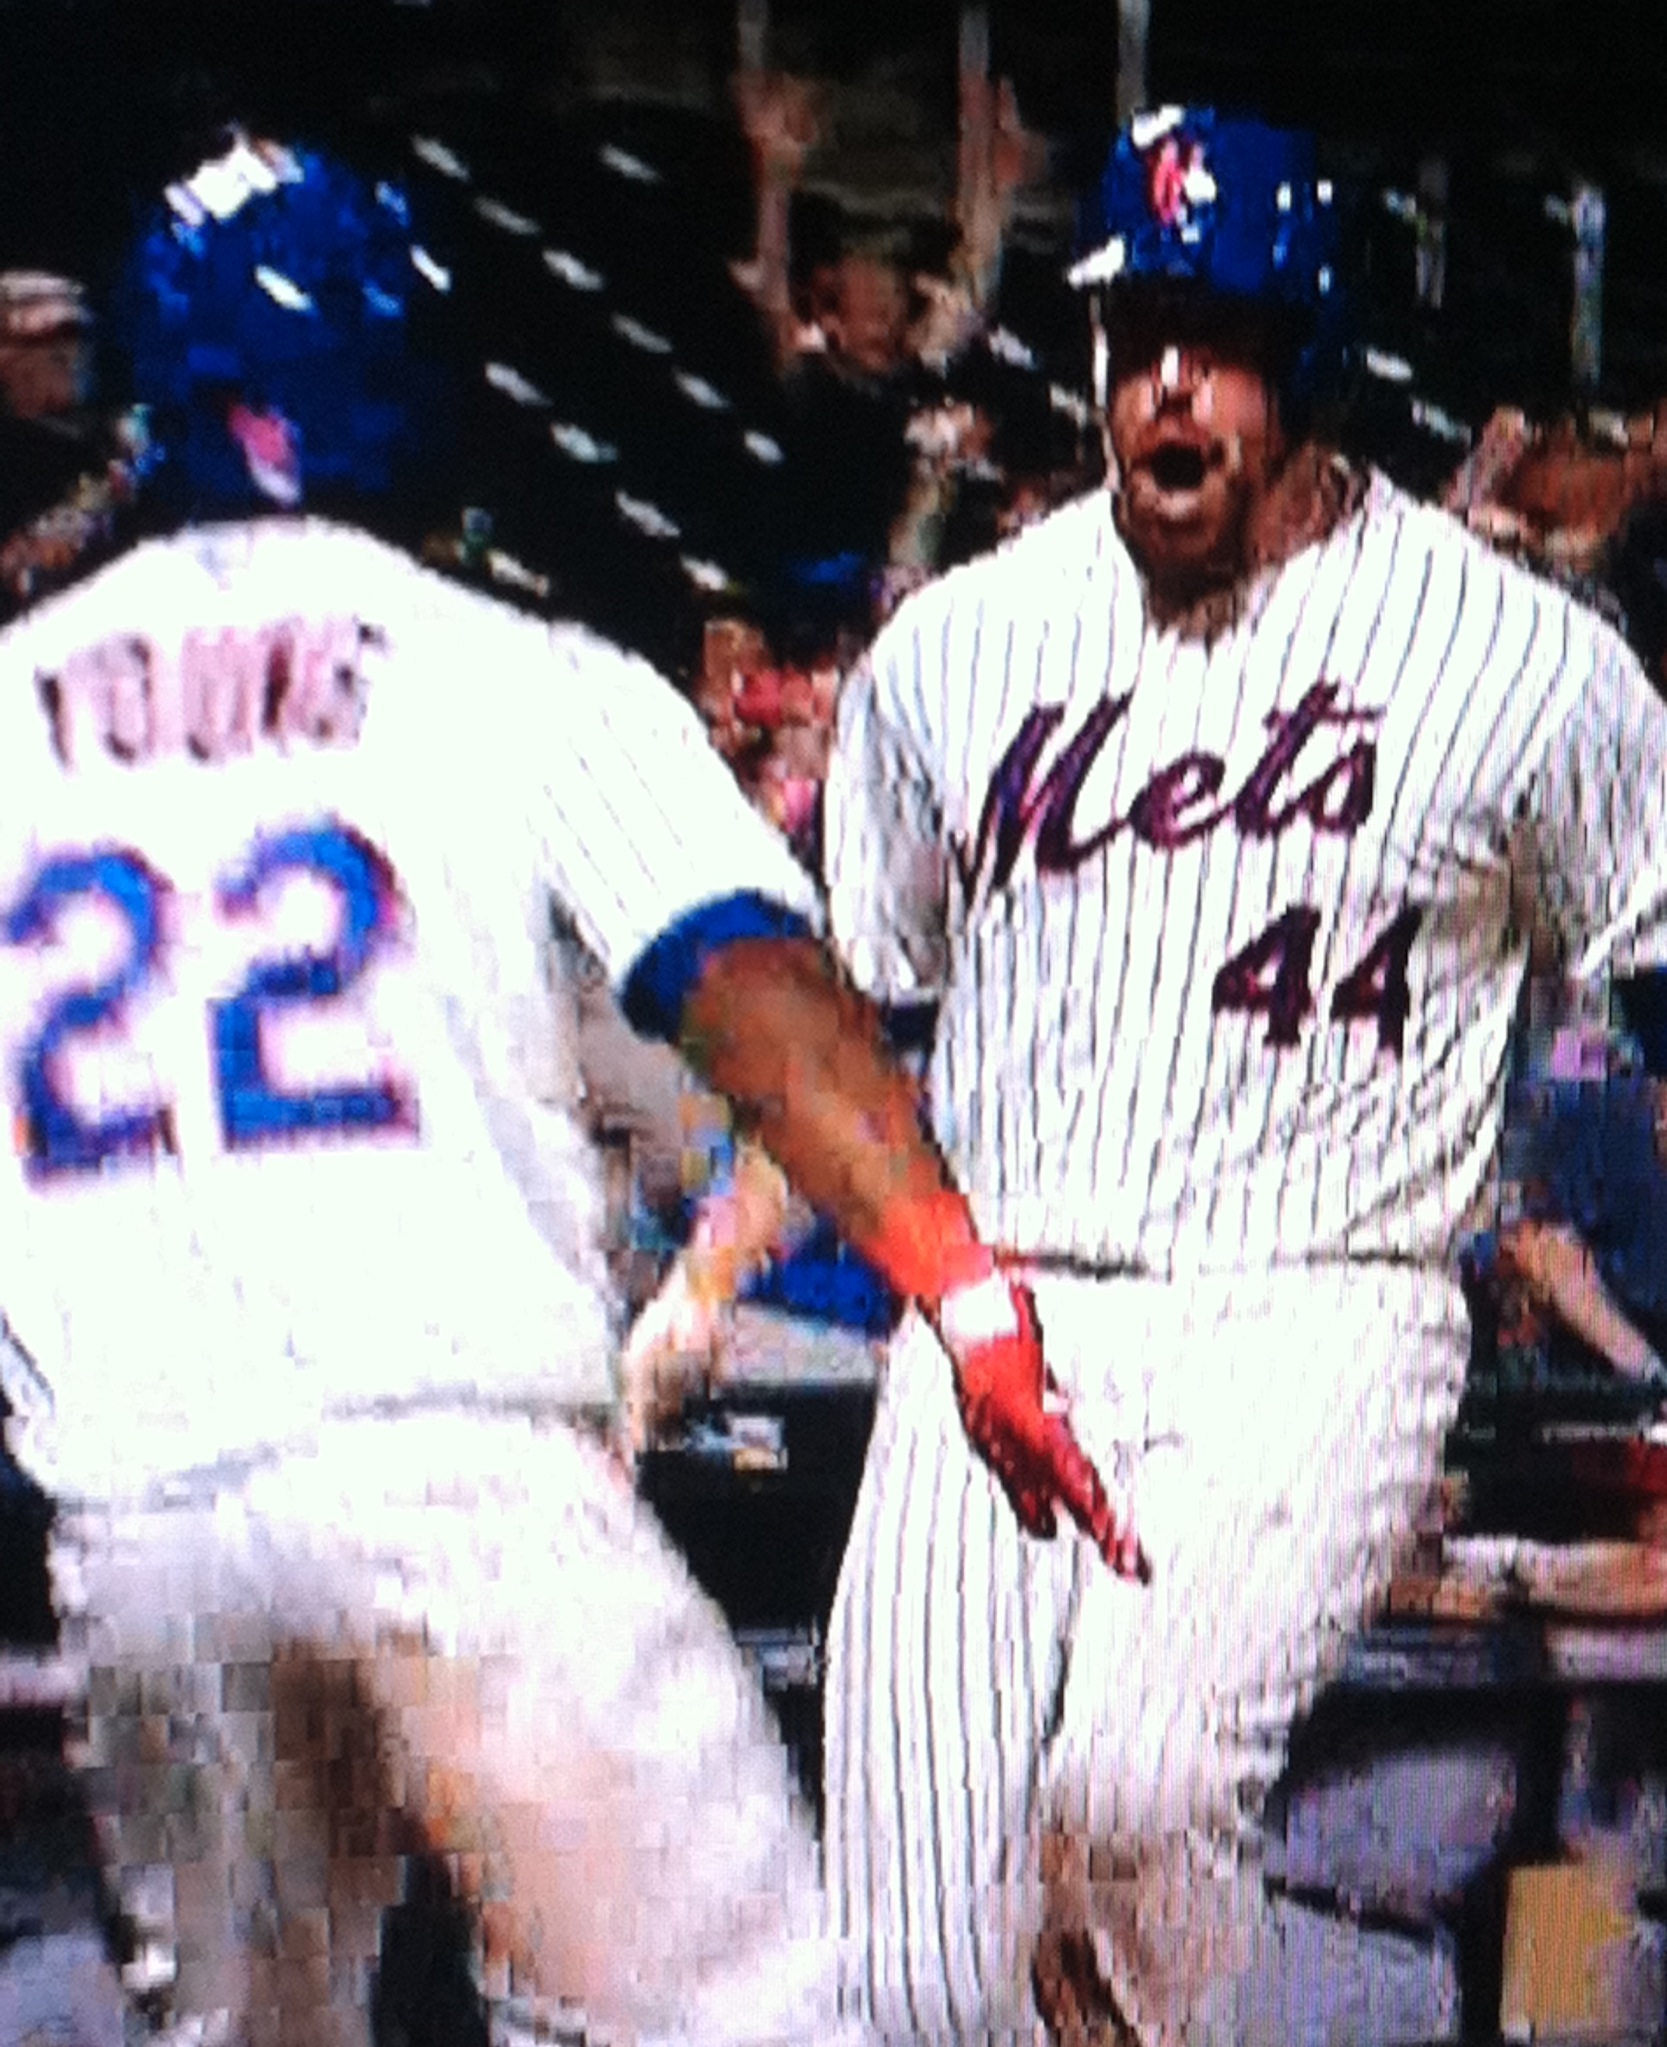 Mets Rally In 13th To Beat D-Backs 5-4 On Brown's Walk-off